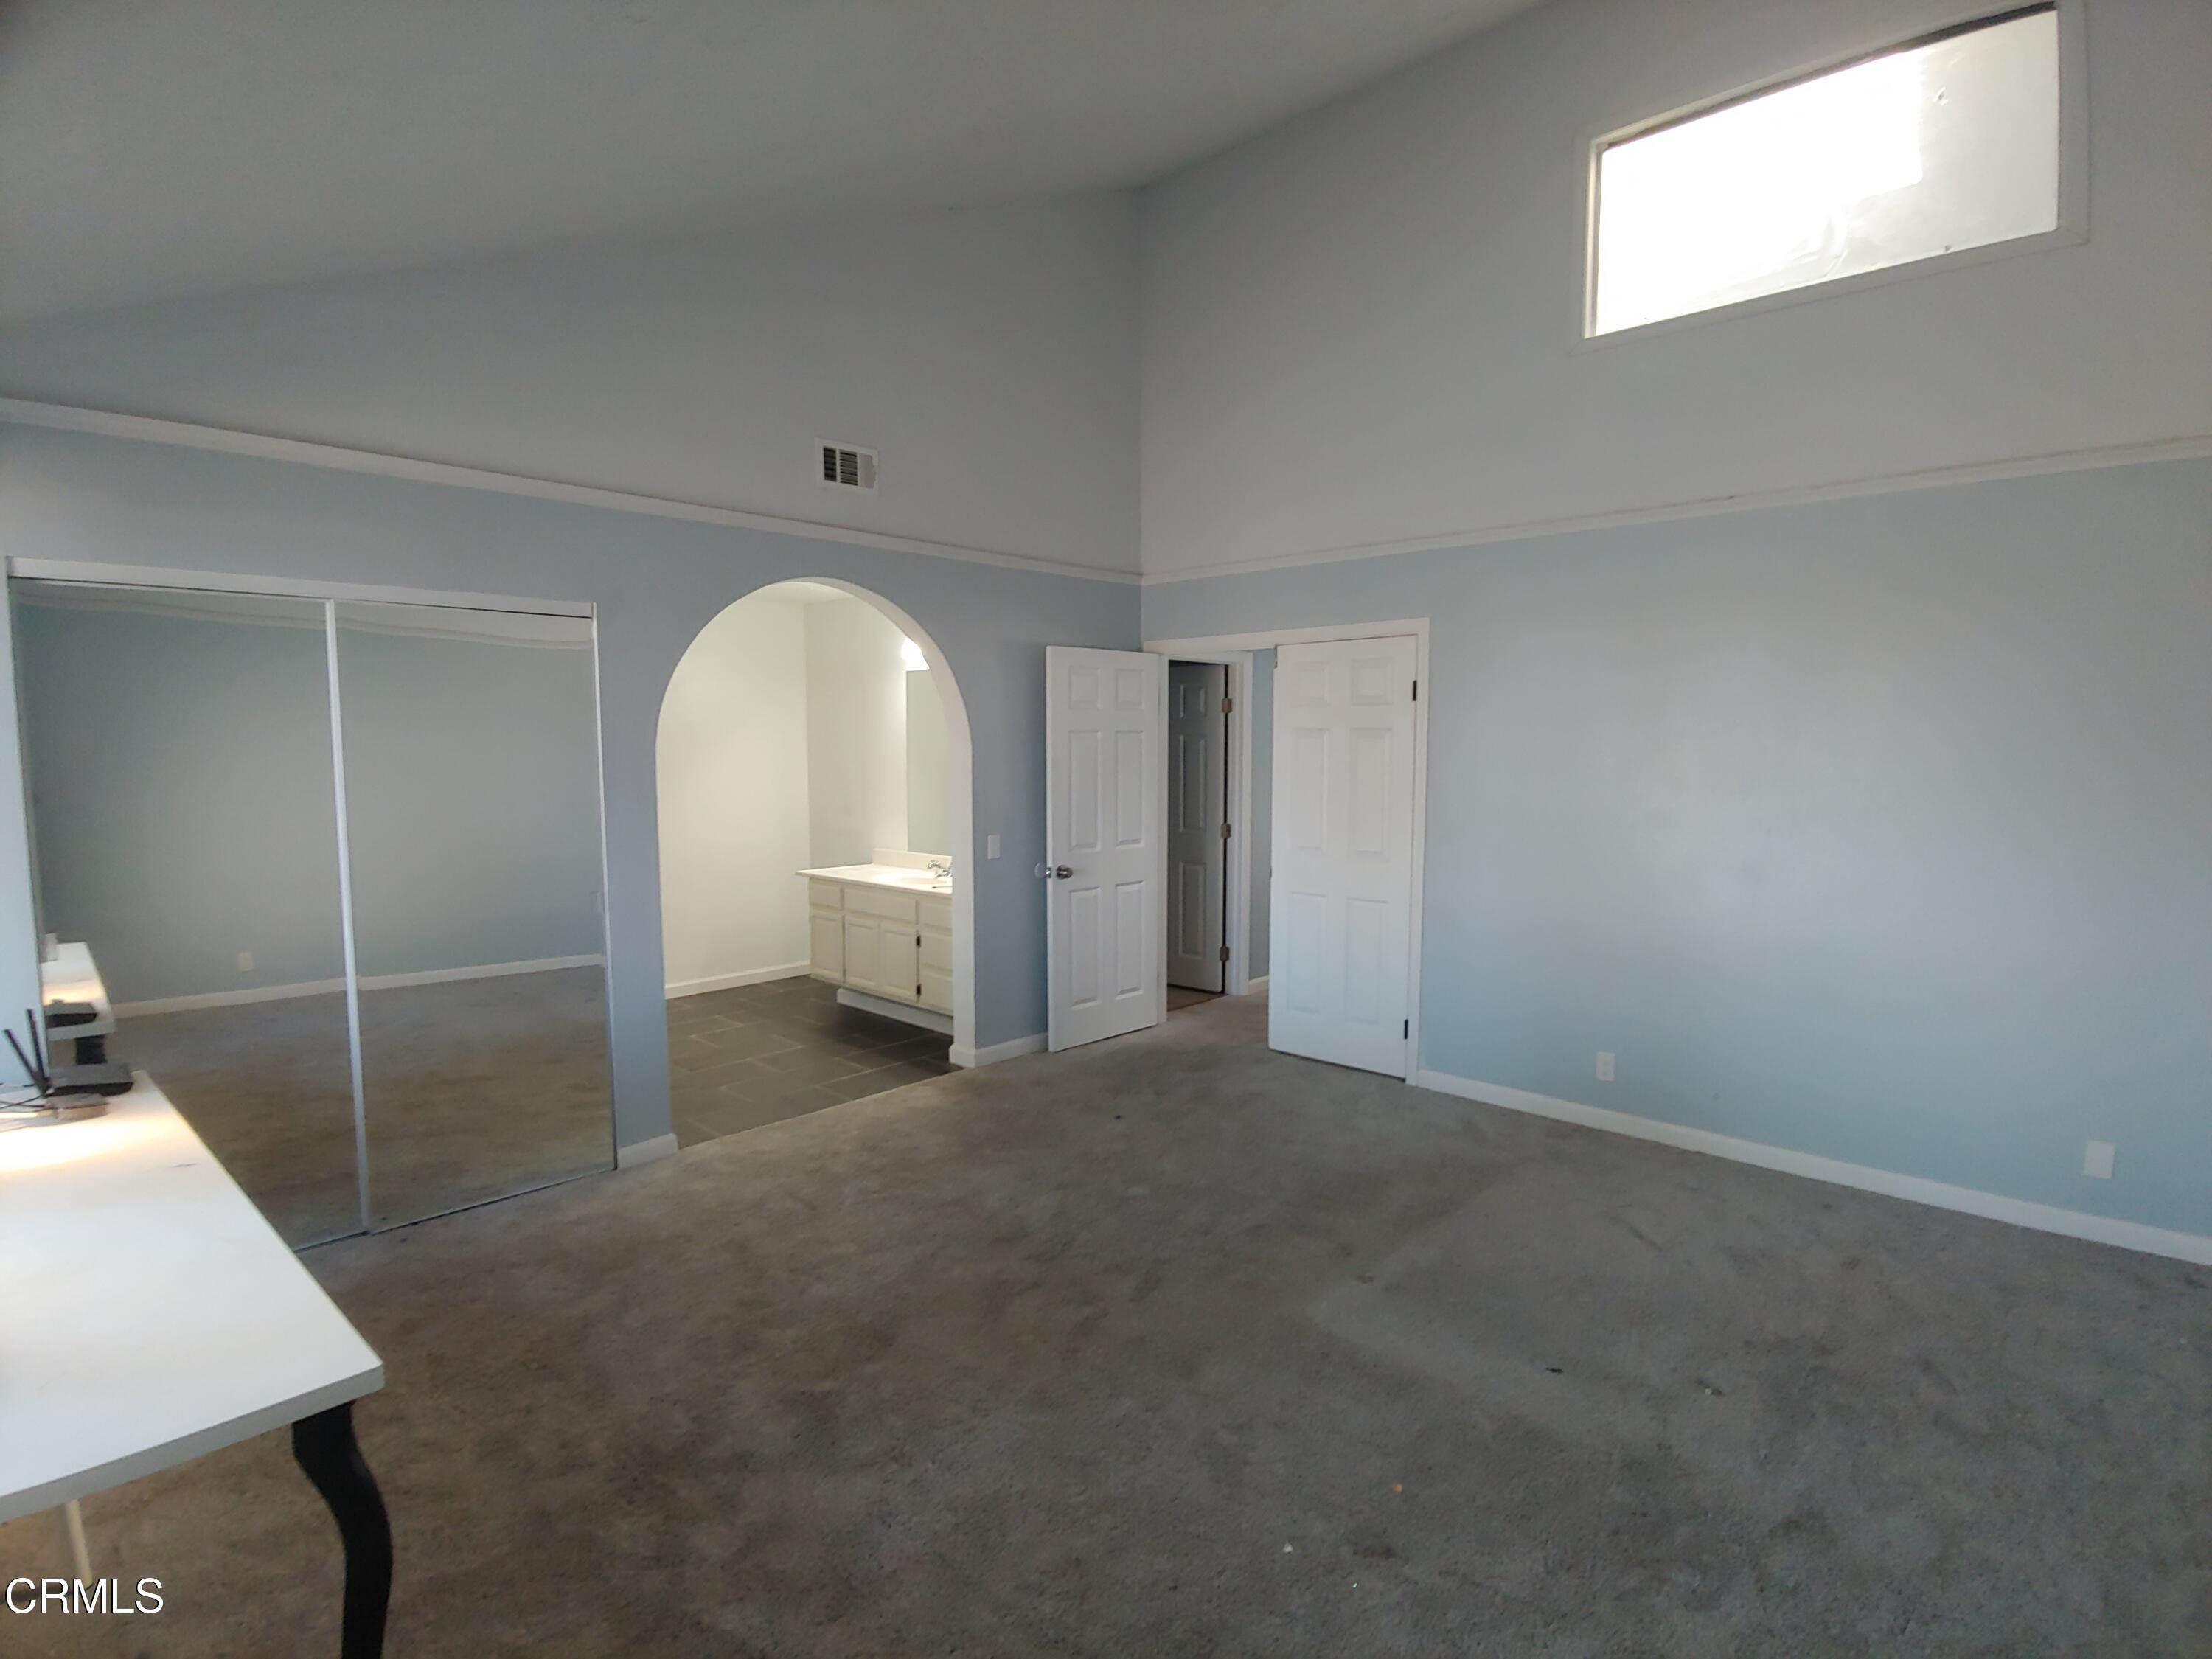 35. Condominiums for Sale at 3454 Olds Road Oxnard, California 93033 United States